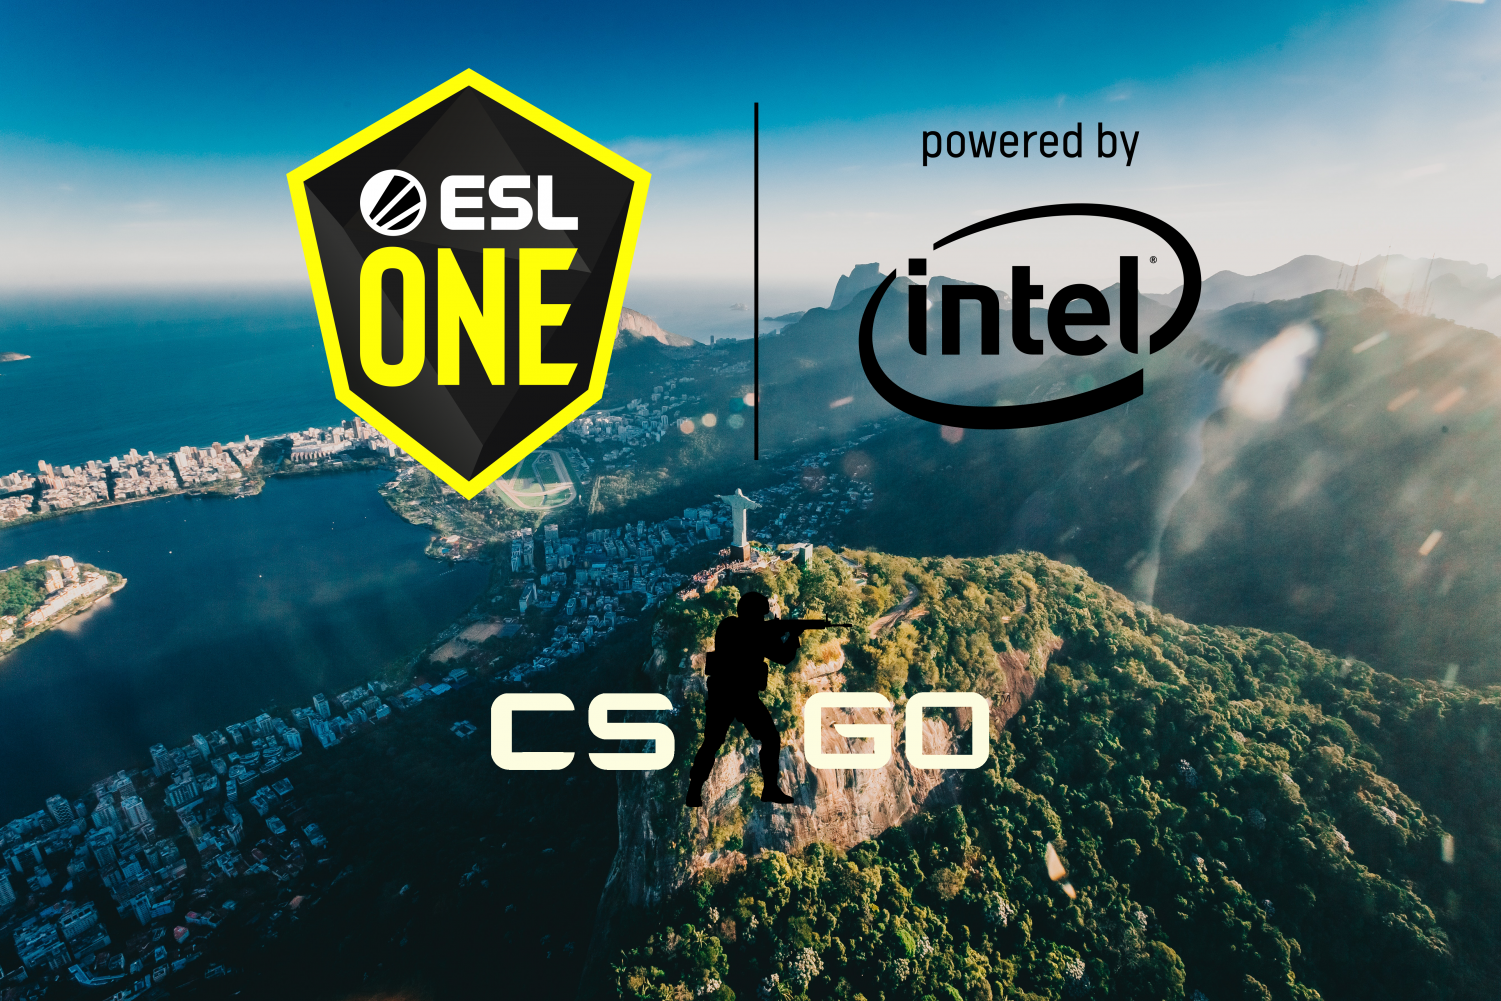 ANOTHER CORONA CASUALTY ESL One Rio 2020 cancelled due to covid-19.